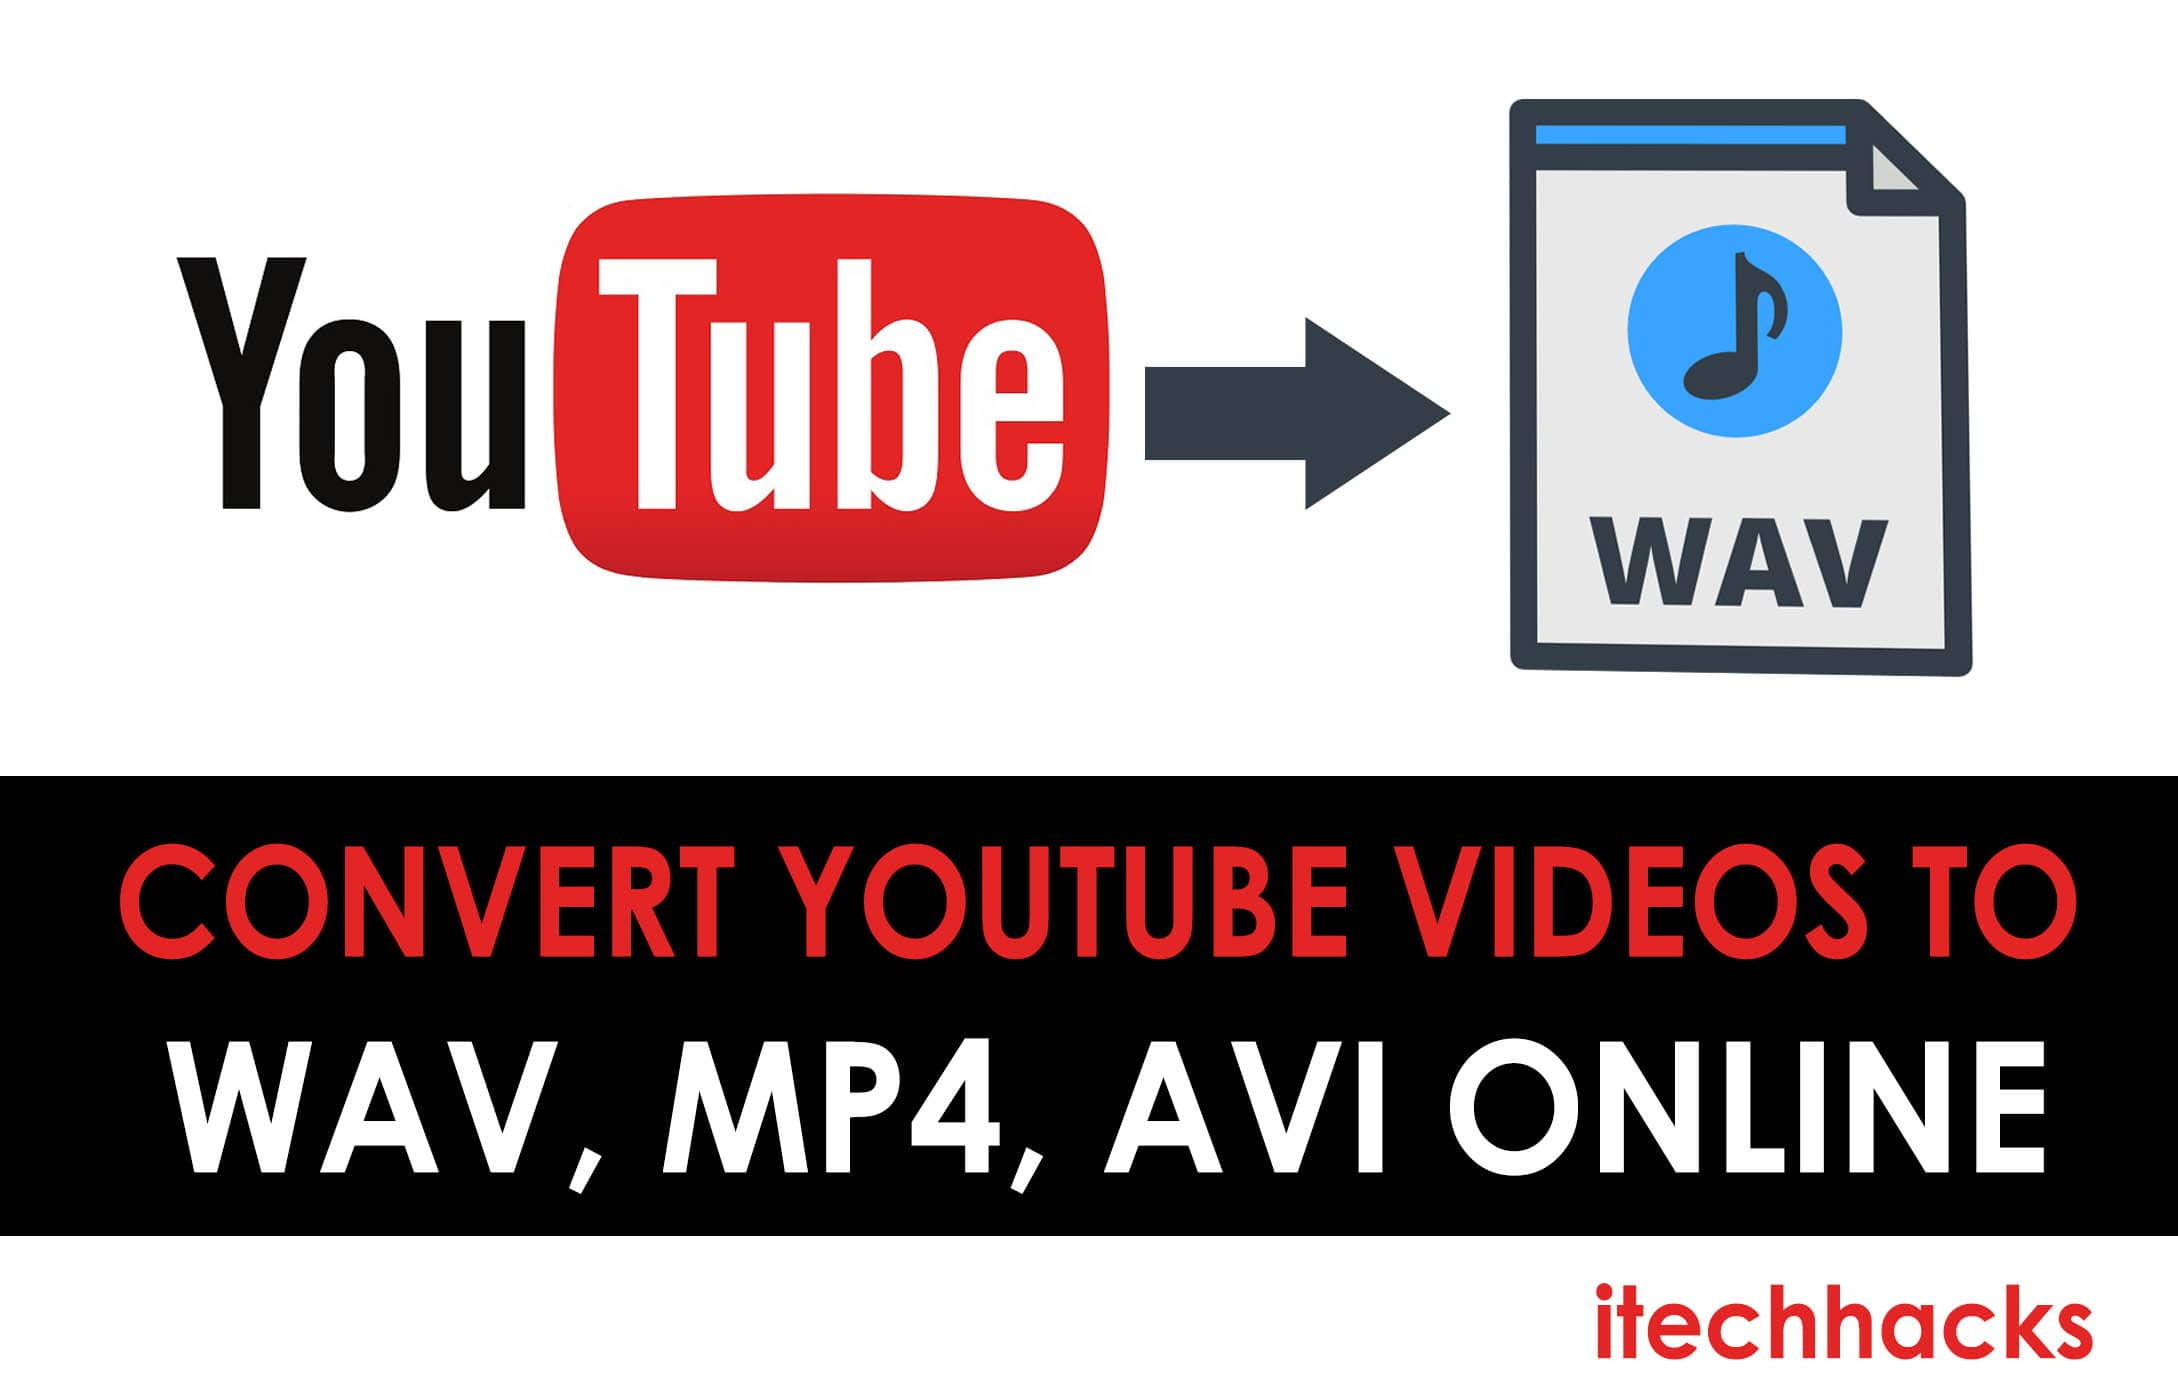 How To Convert YouTube videos to WAV, MP4, AVI Online